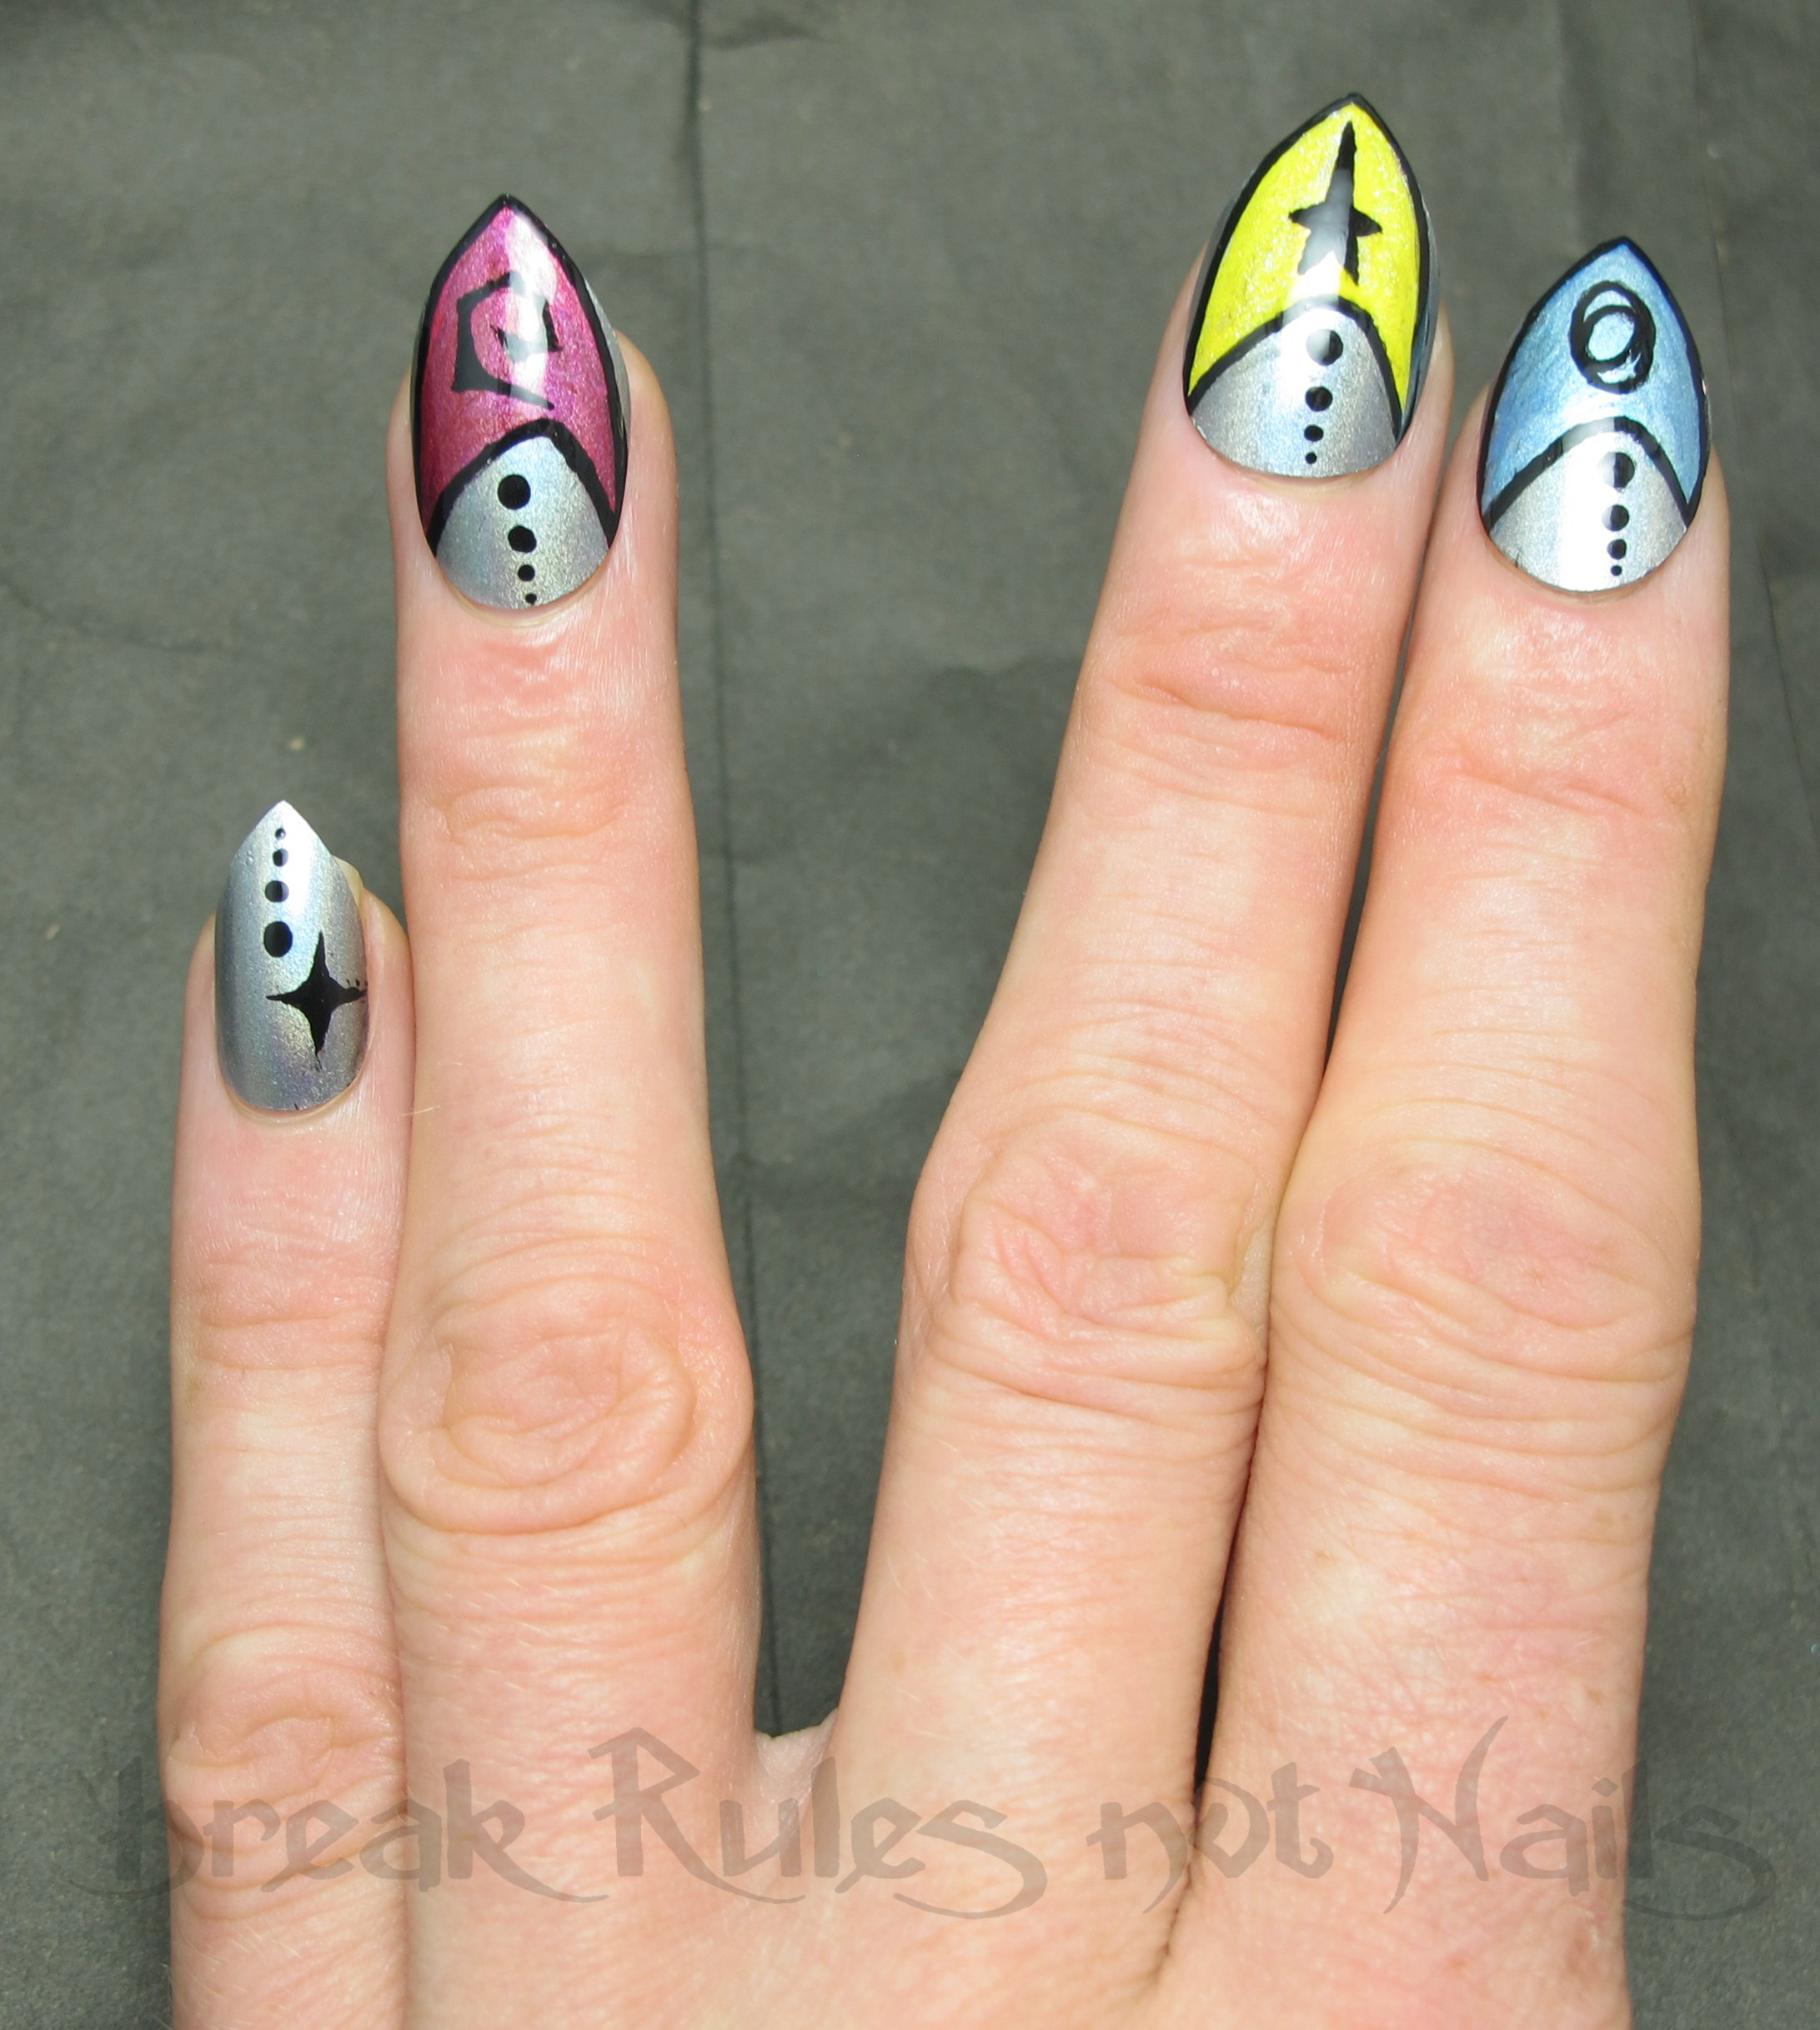 Star Trek nail art | Break rules, not nails